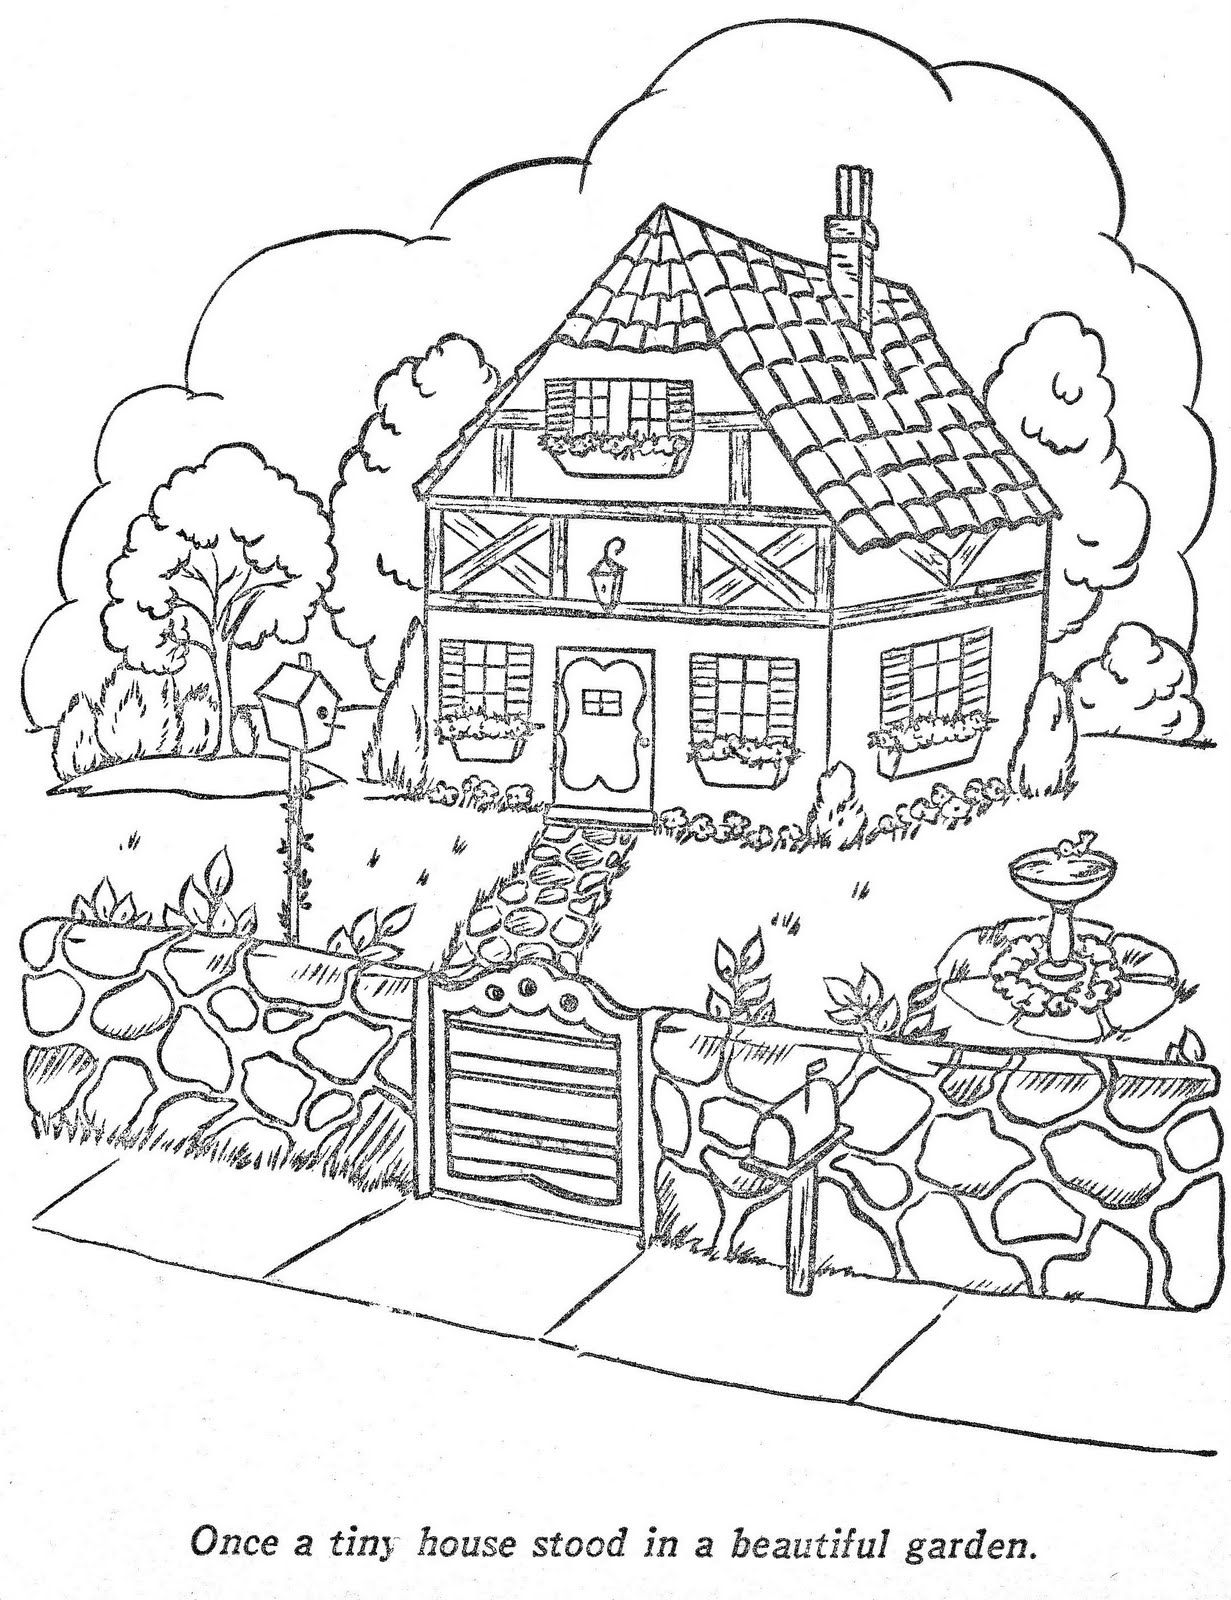 Livro Colorir Elfo 283 29 Jpg 1 231 1 600 Pixels Coloring Pages House Colouring Pages Coloring Books